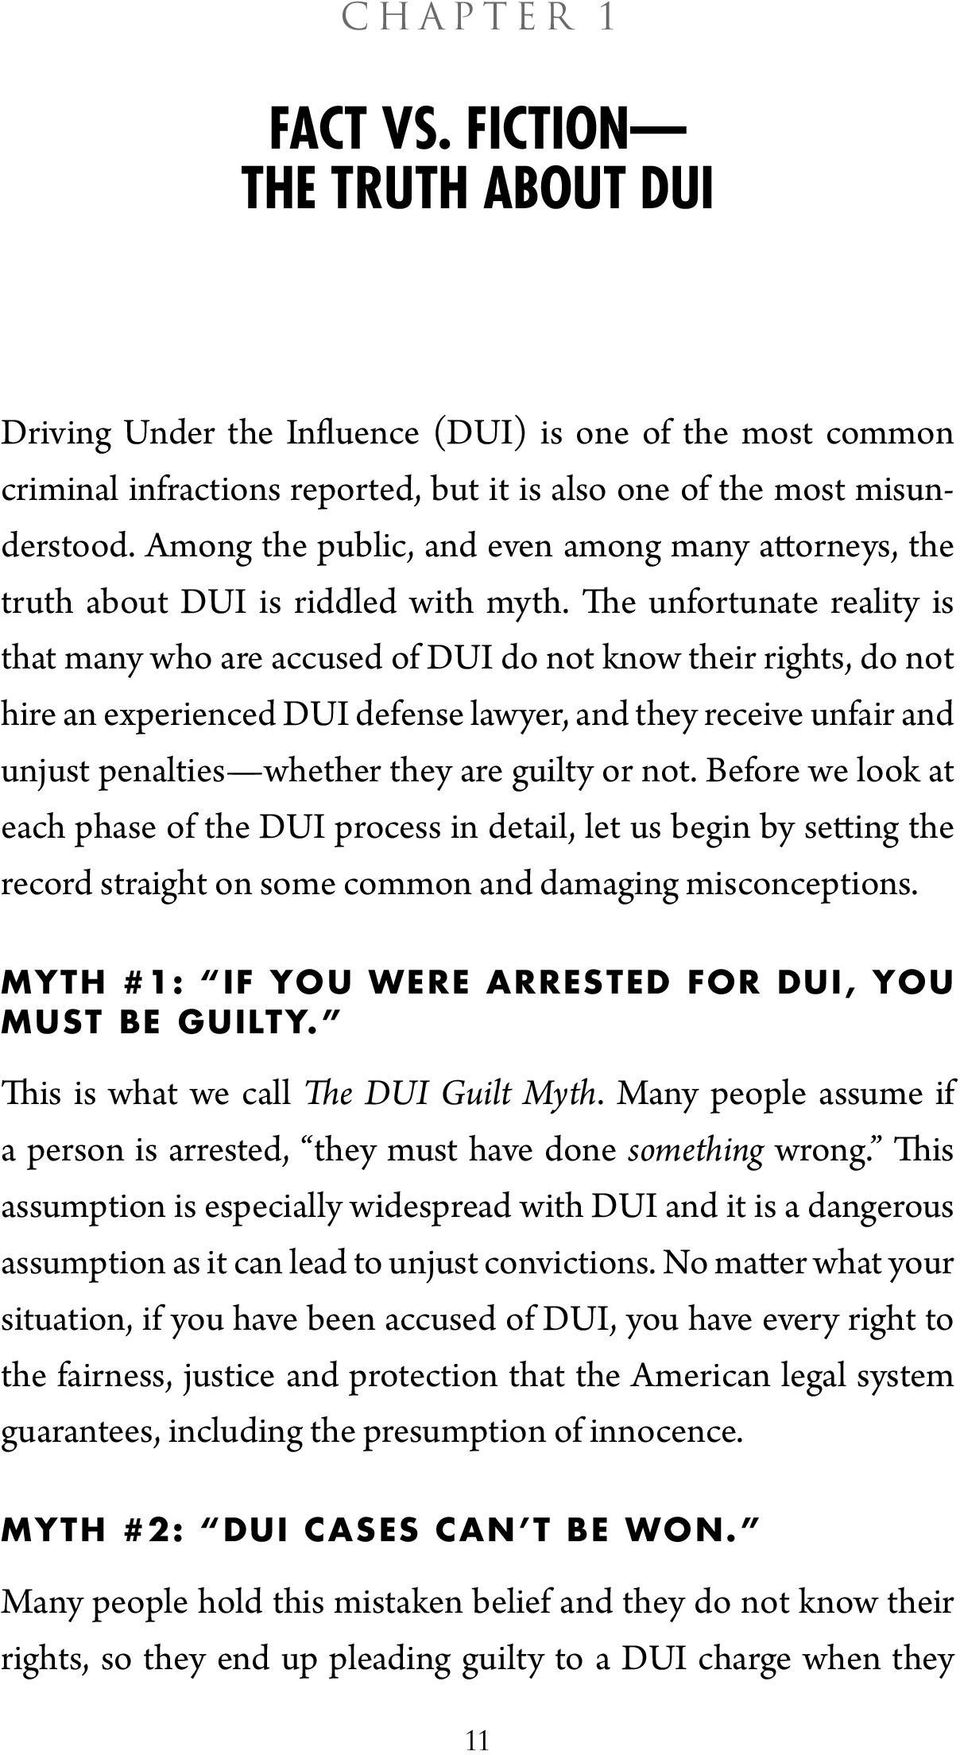 The unfortunate reality is that many who are accused of DUI do not know their rights, do not hire an experienced DUI defense lawyer, and they receive unfair and unjust penalties whether they are